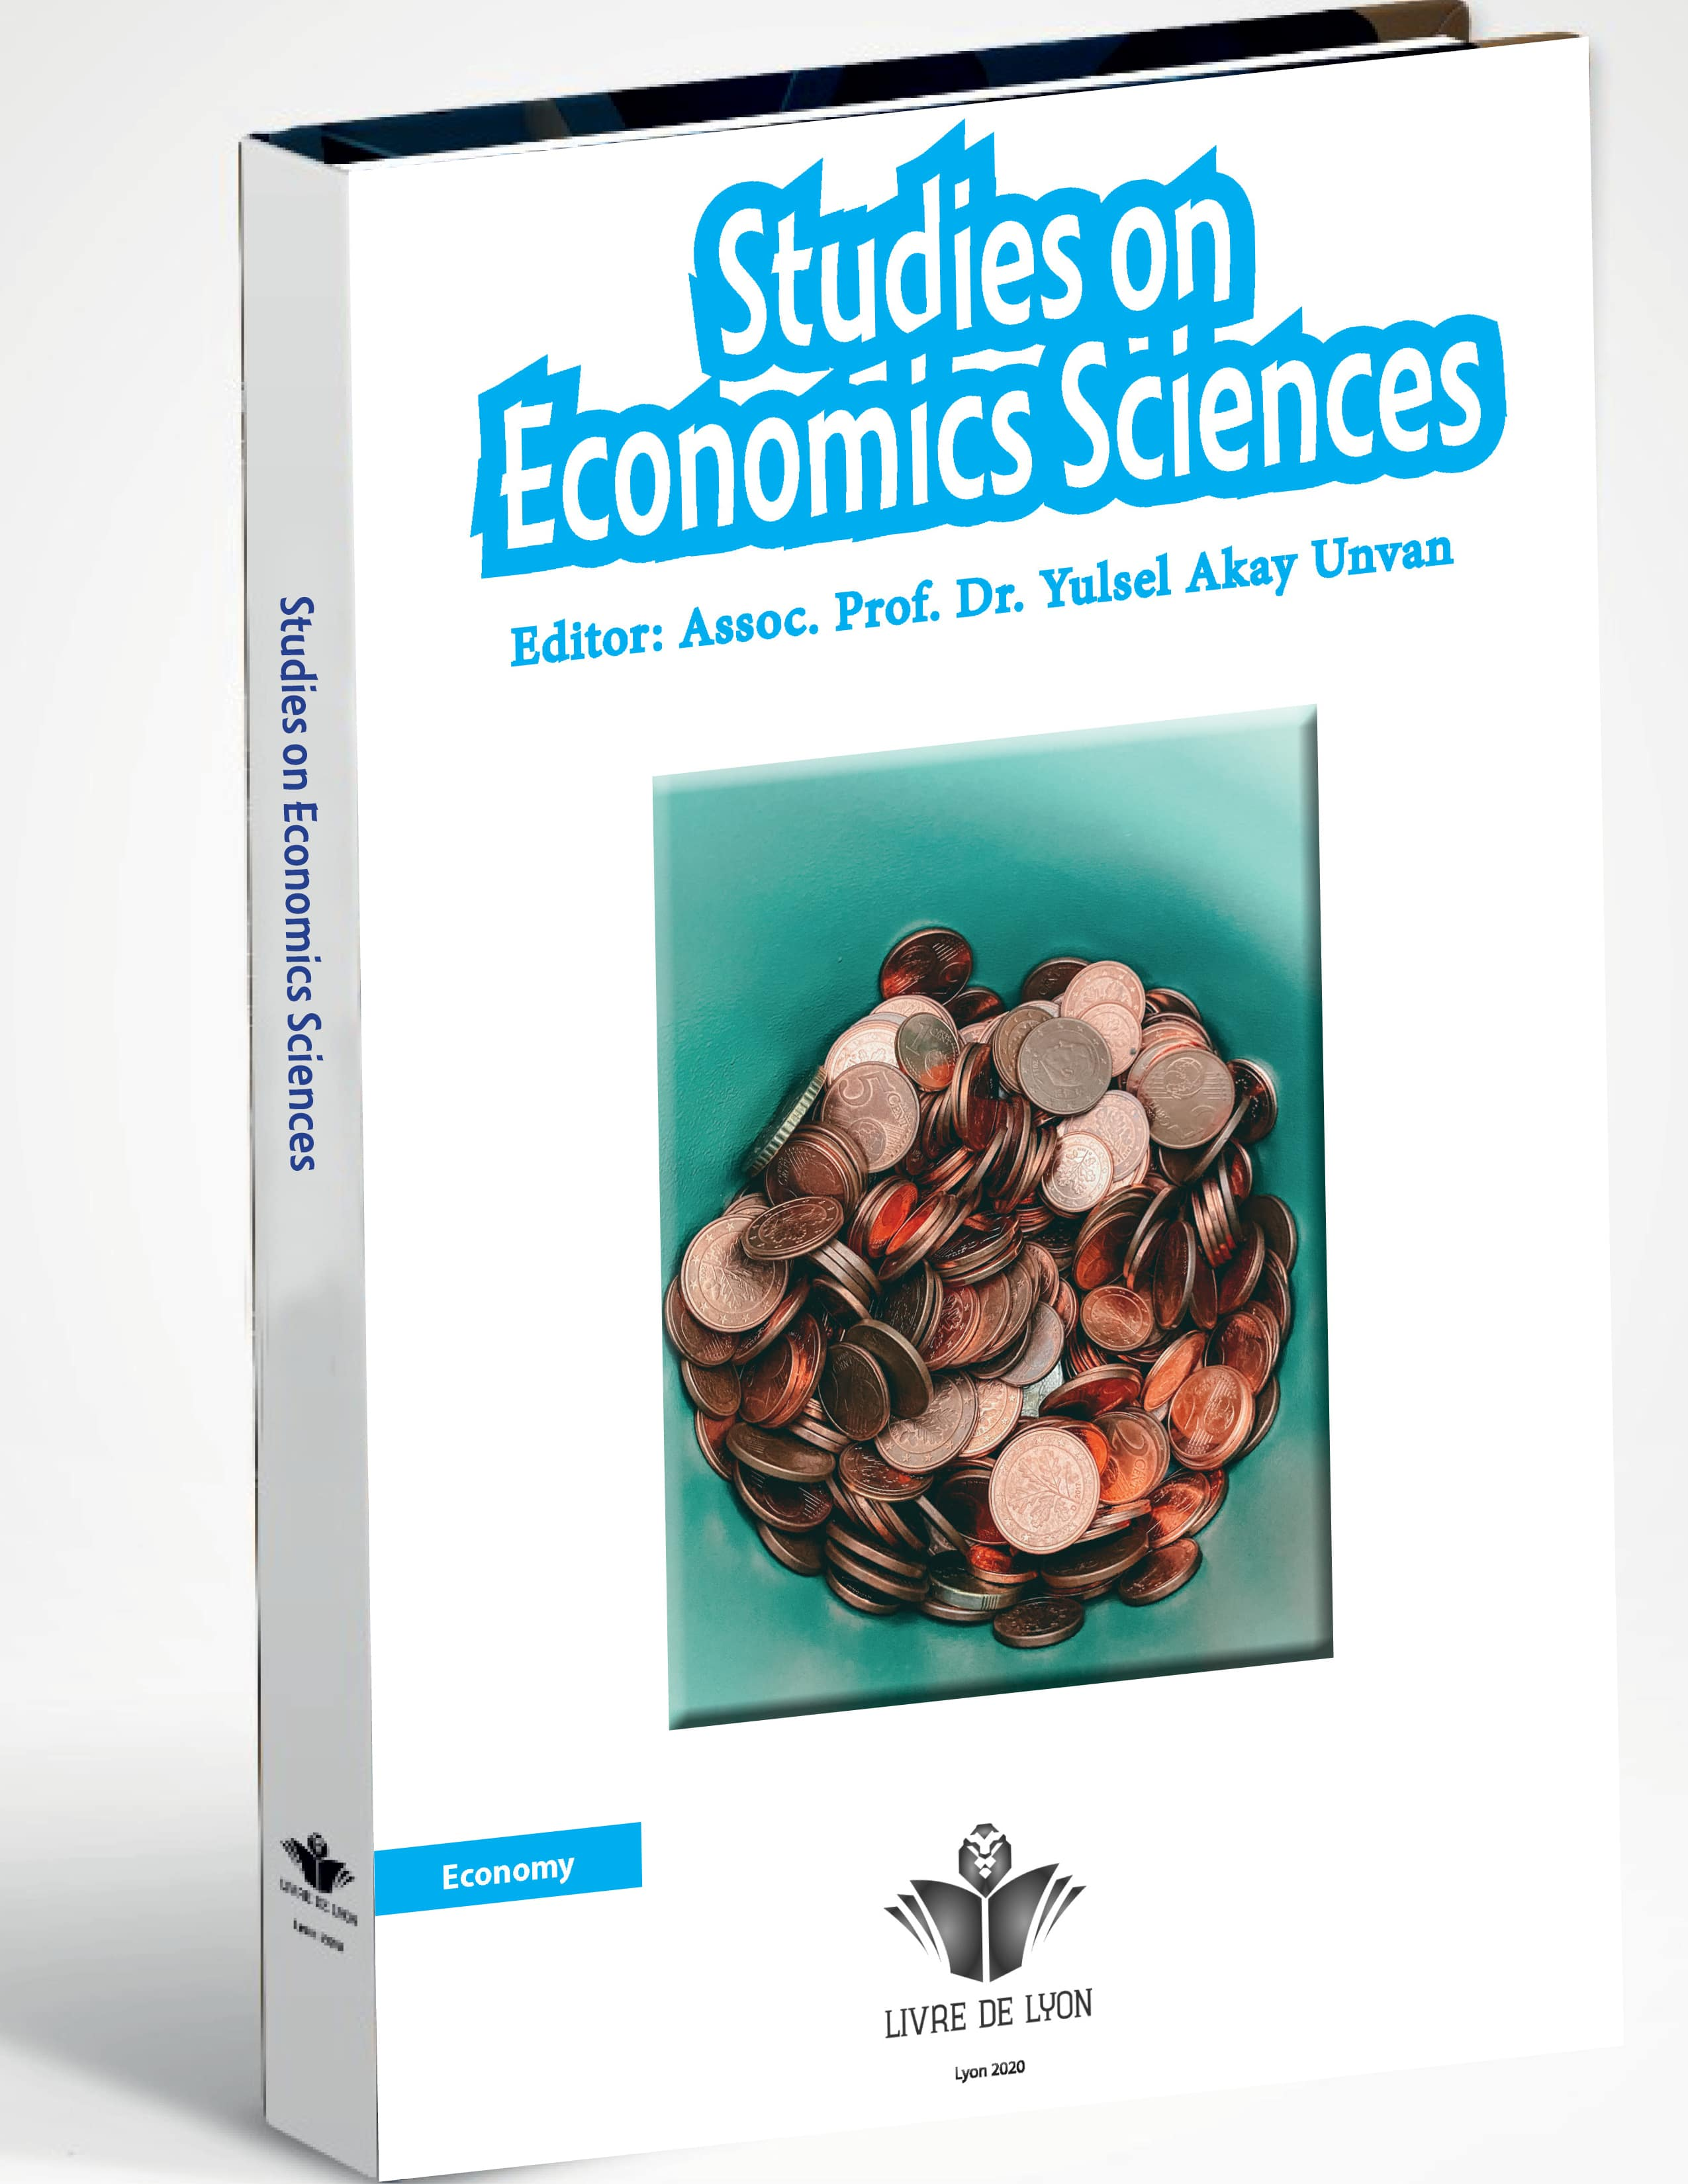 Studies on Economics Sciences